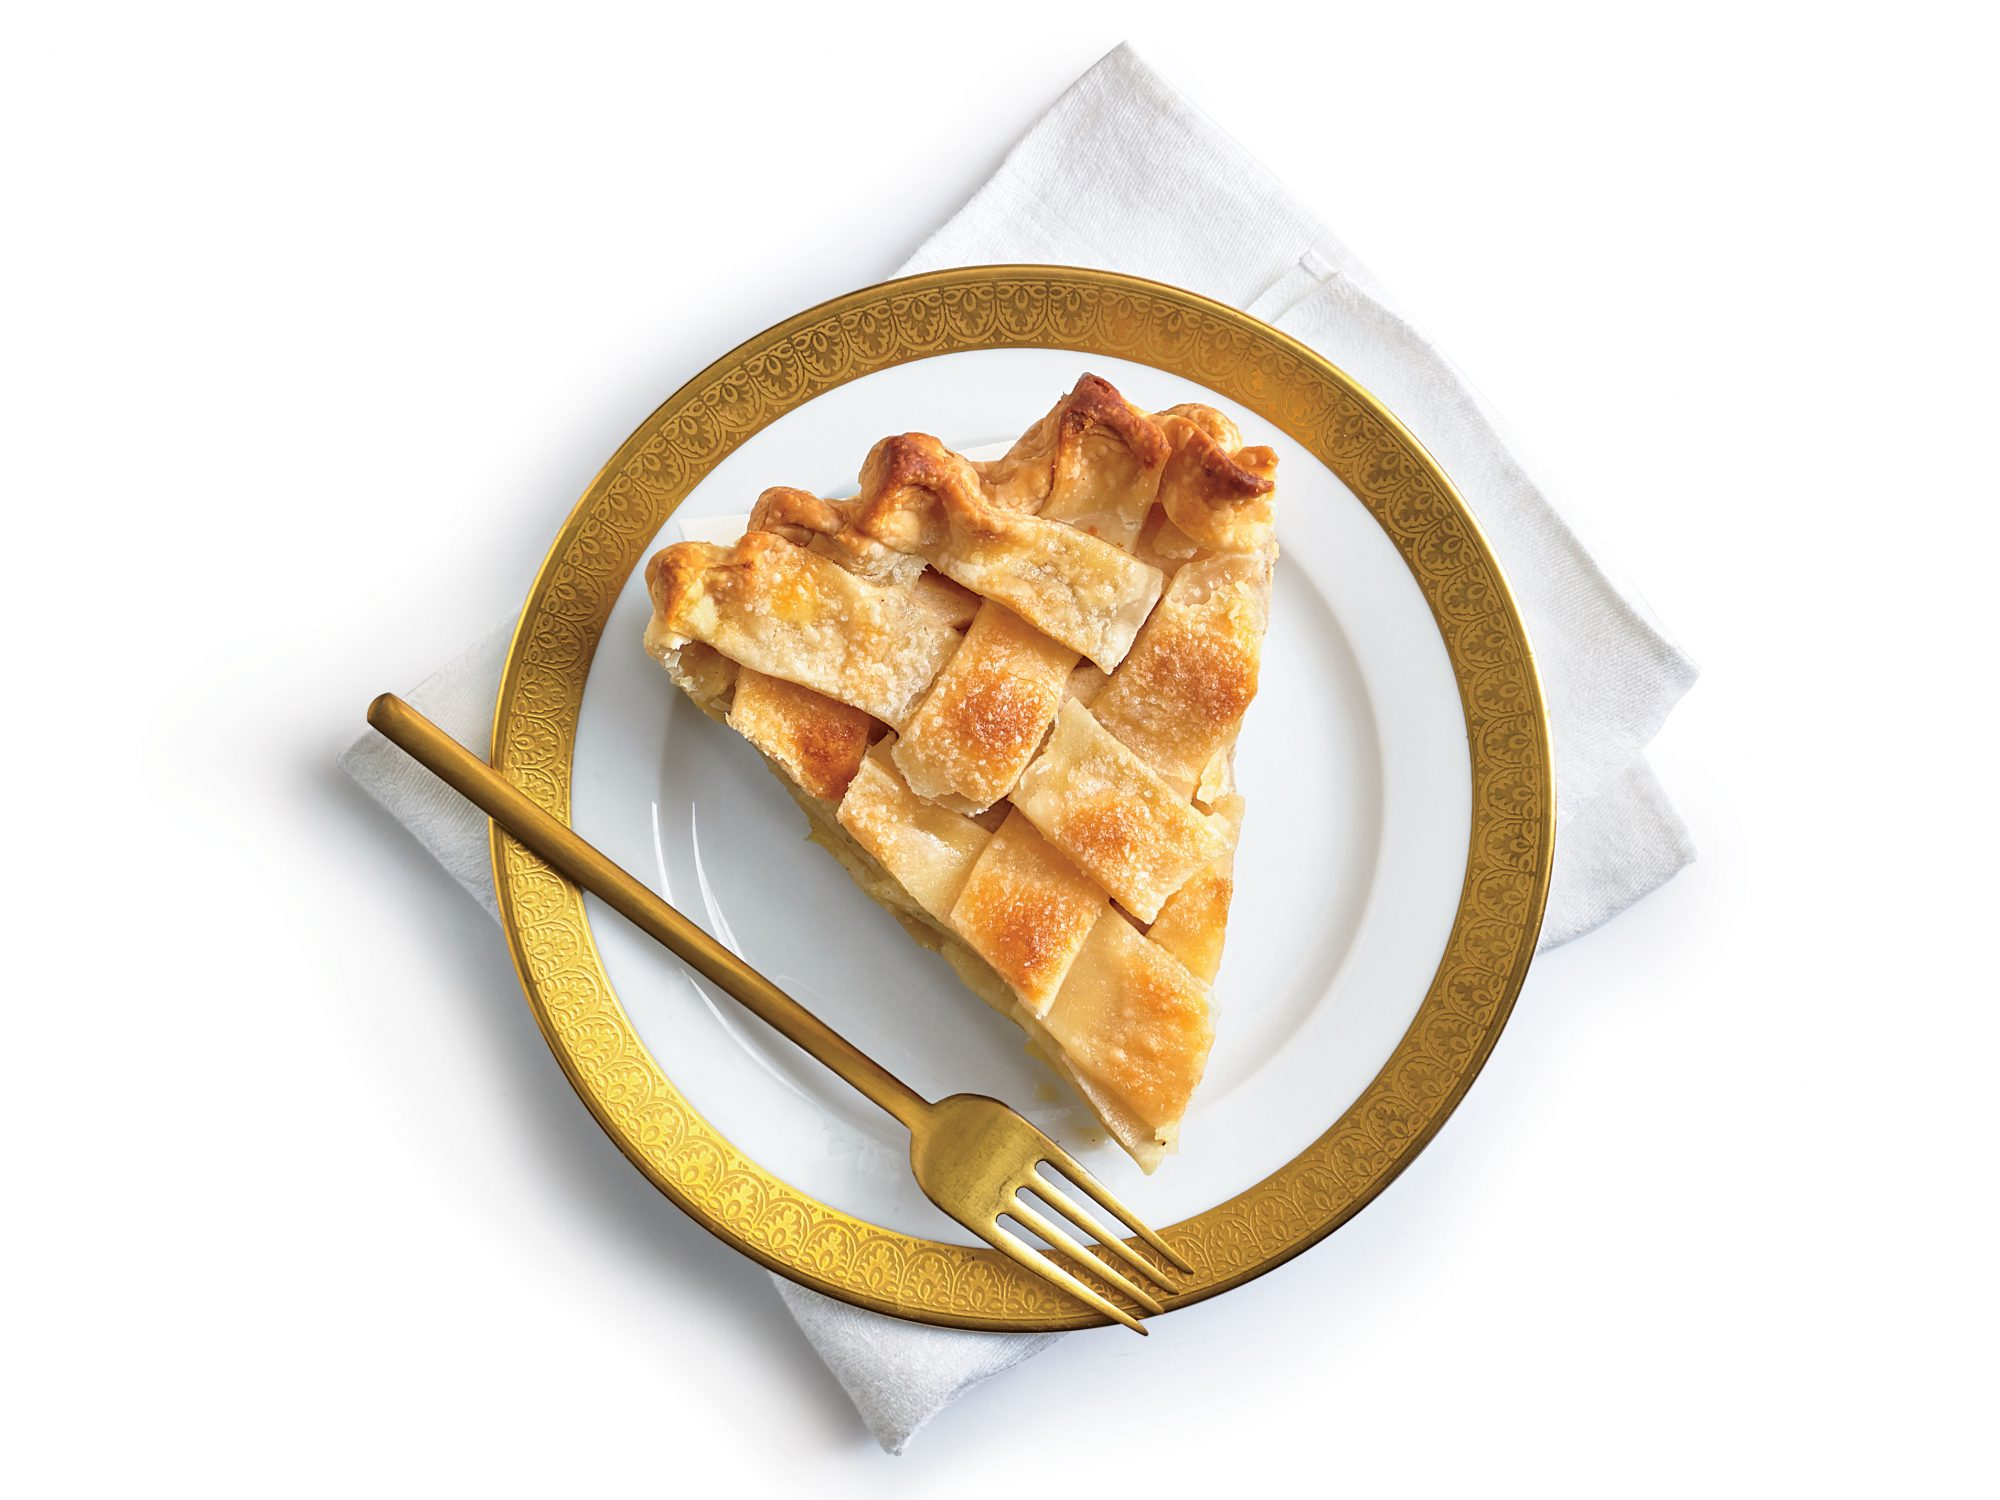 Apple Pie with lattice crust on plate